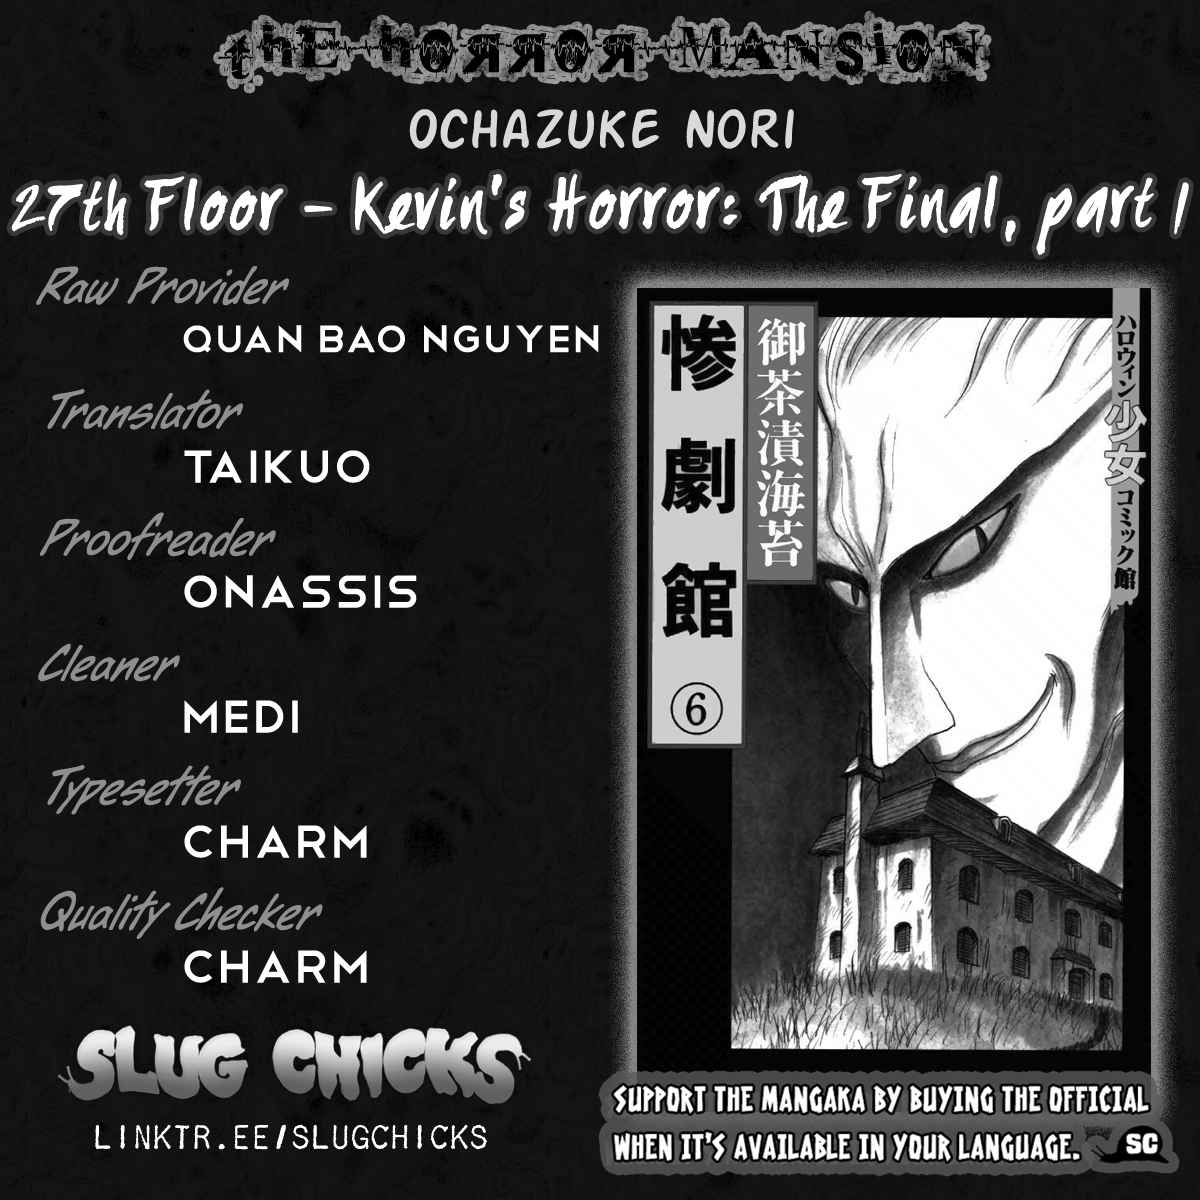 Zangekikan Vol. 6 Ch. 27 Kevin's Horror, The Final Part (Part 1)